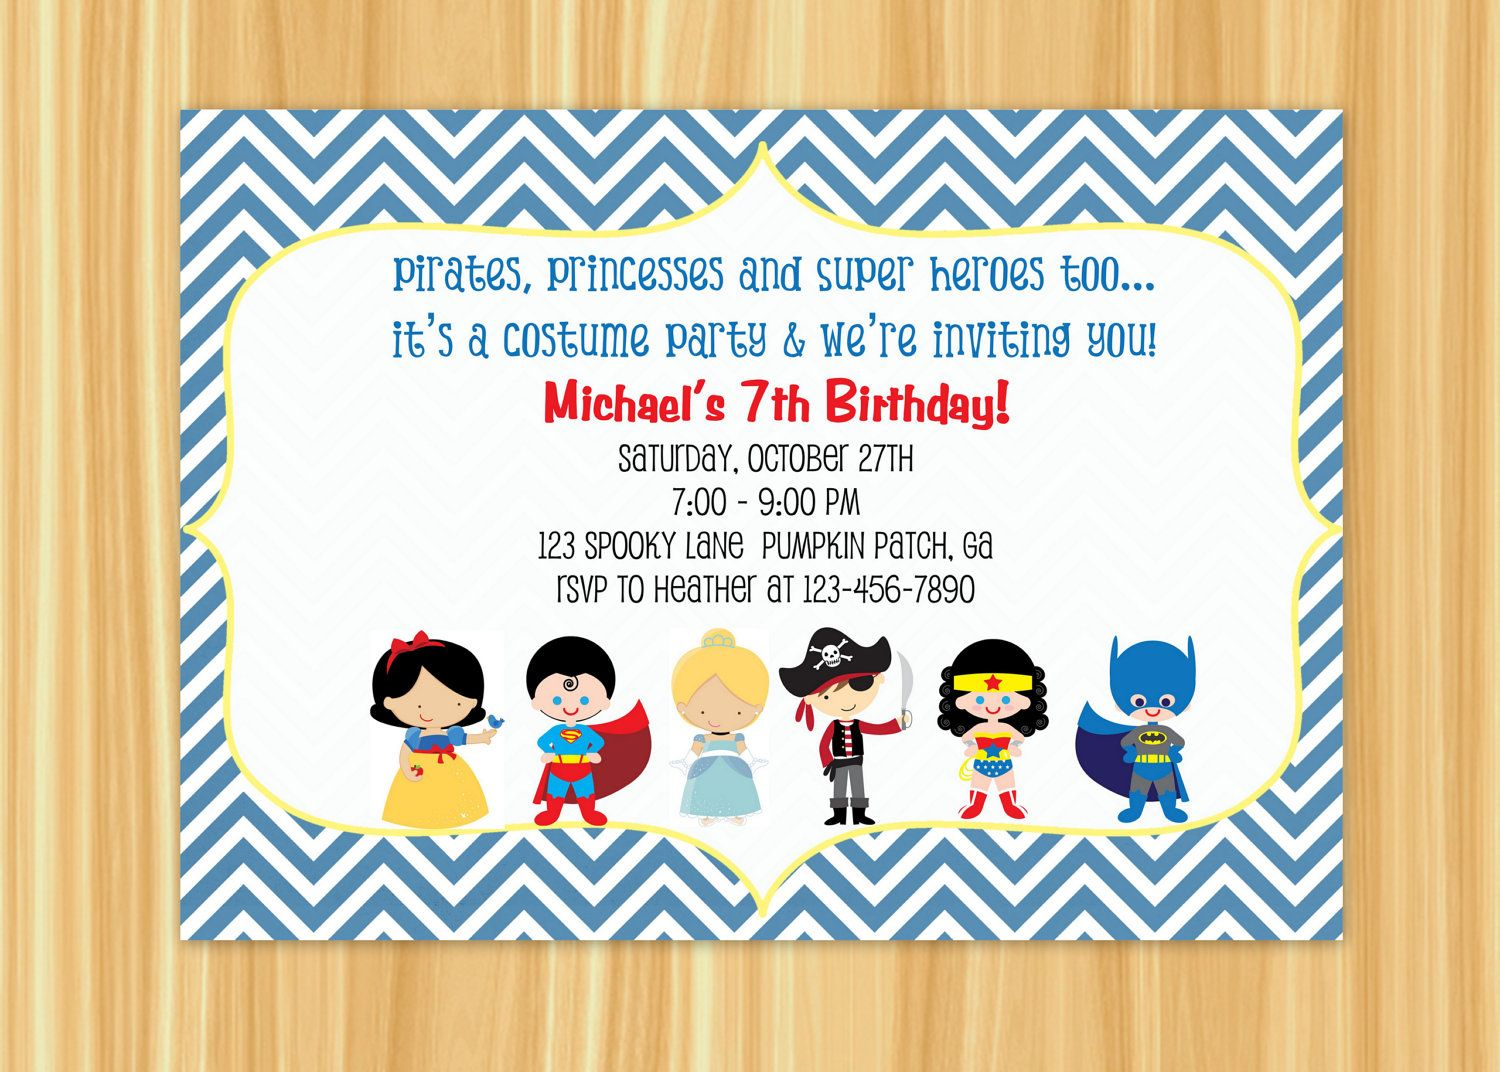 Custom Printable Kids Costume Party Birthday Invitation 1000 via